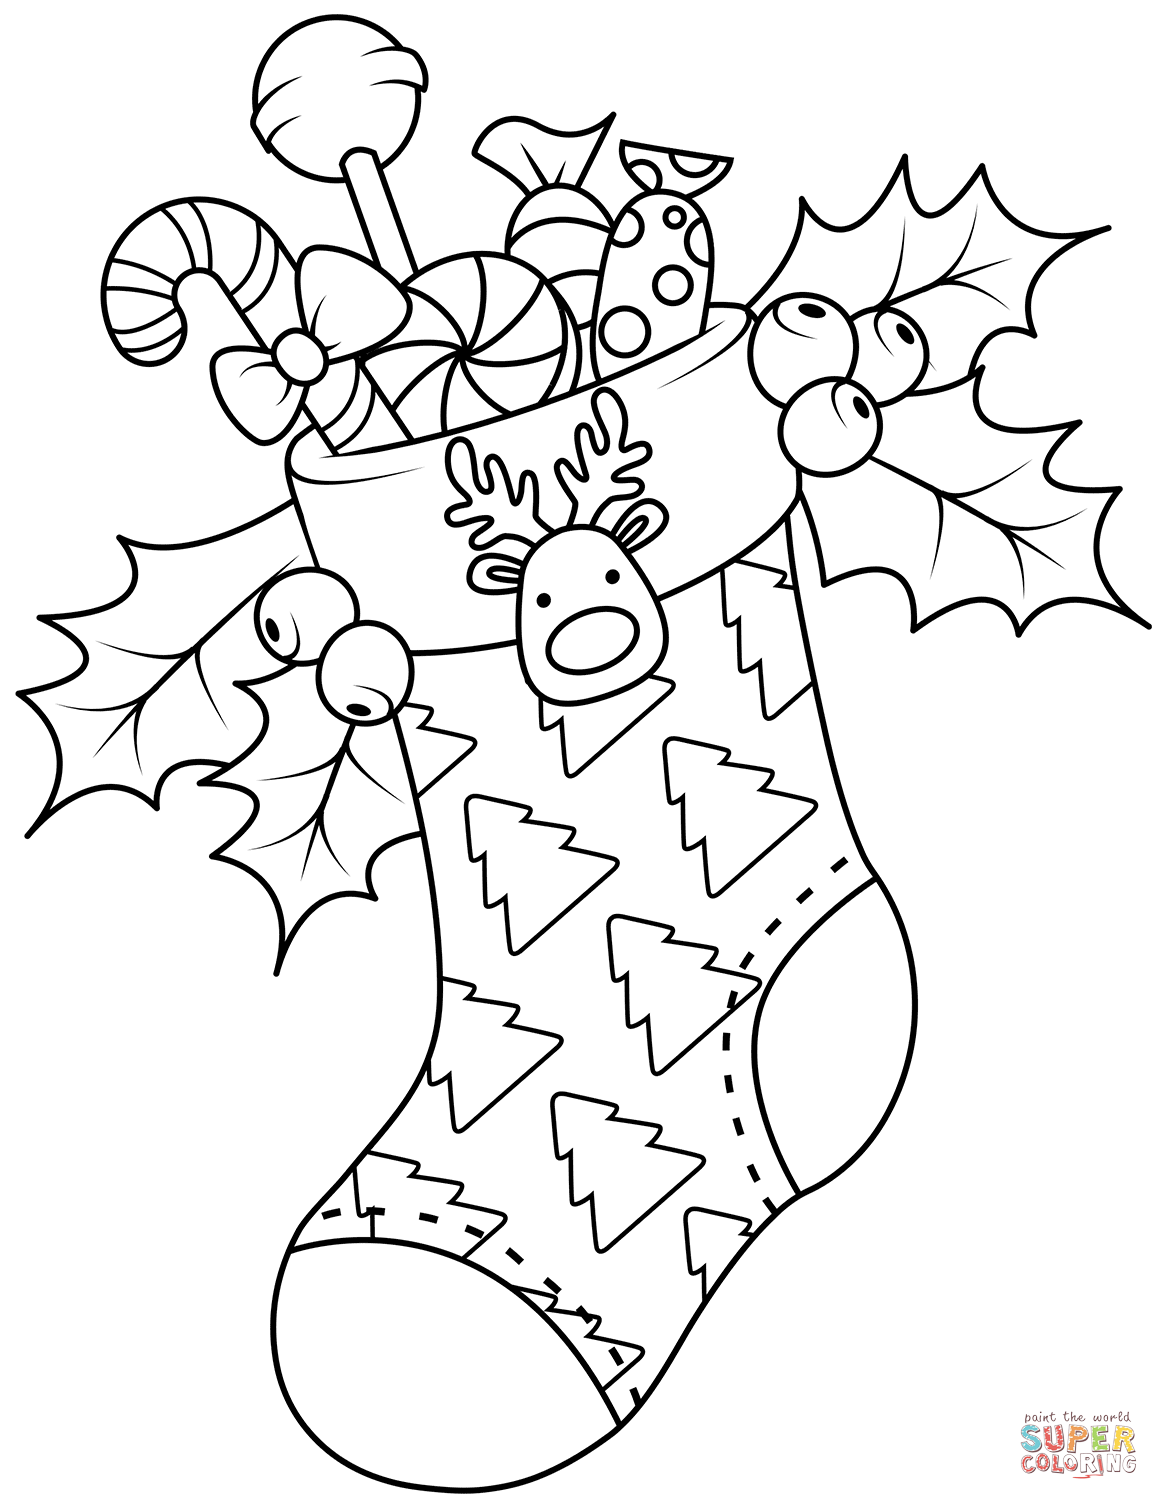 Dear Santa Coloring Page With Christmas Stockings Pages Free